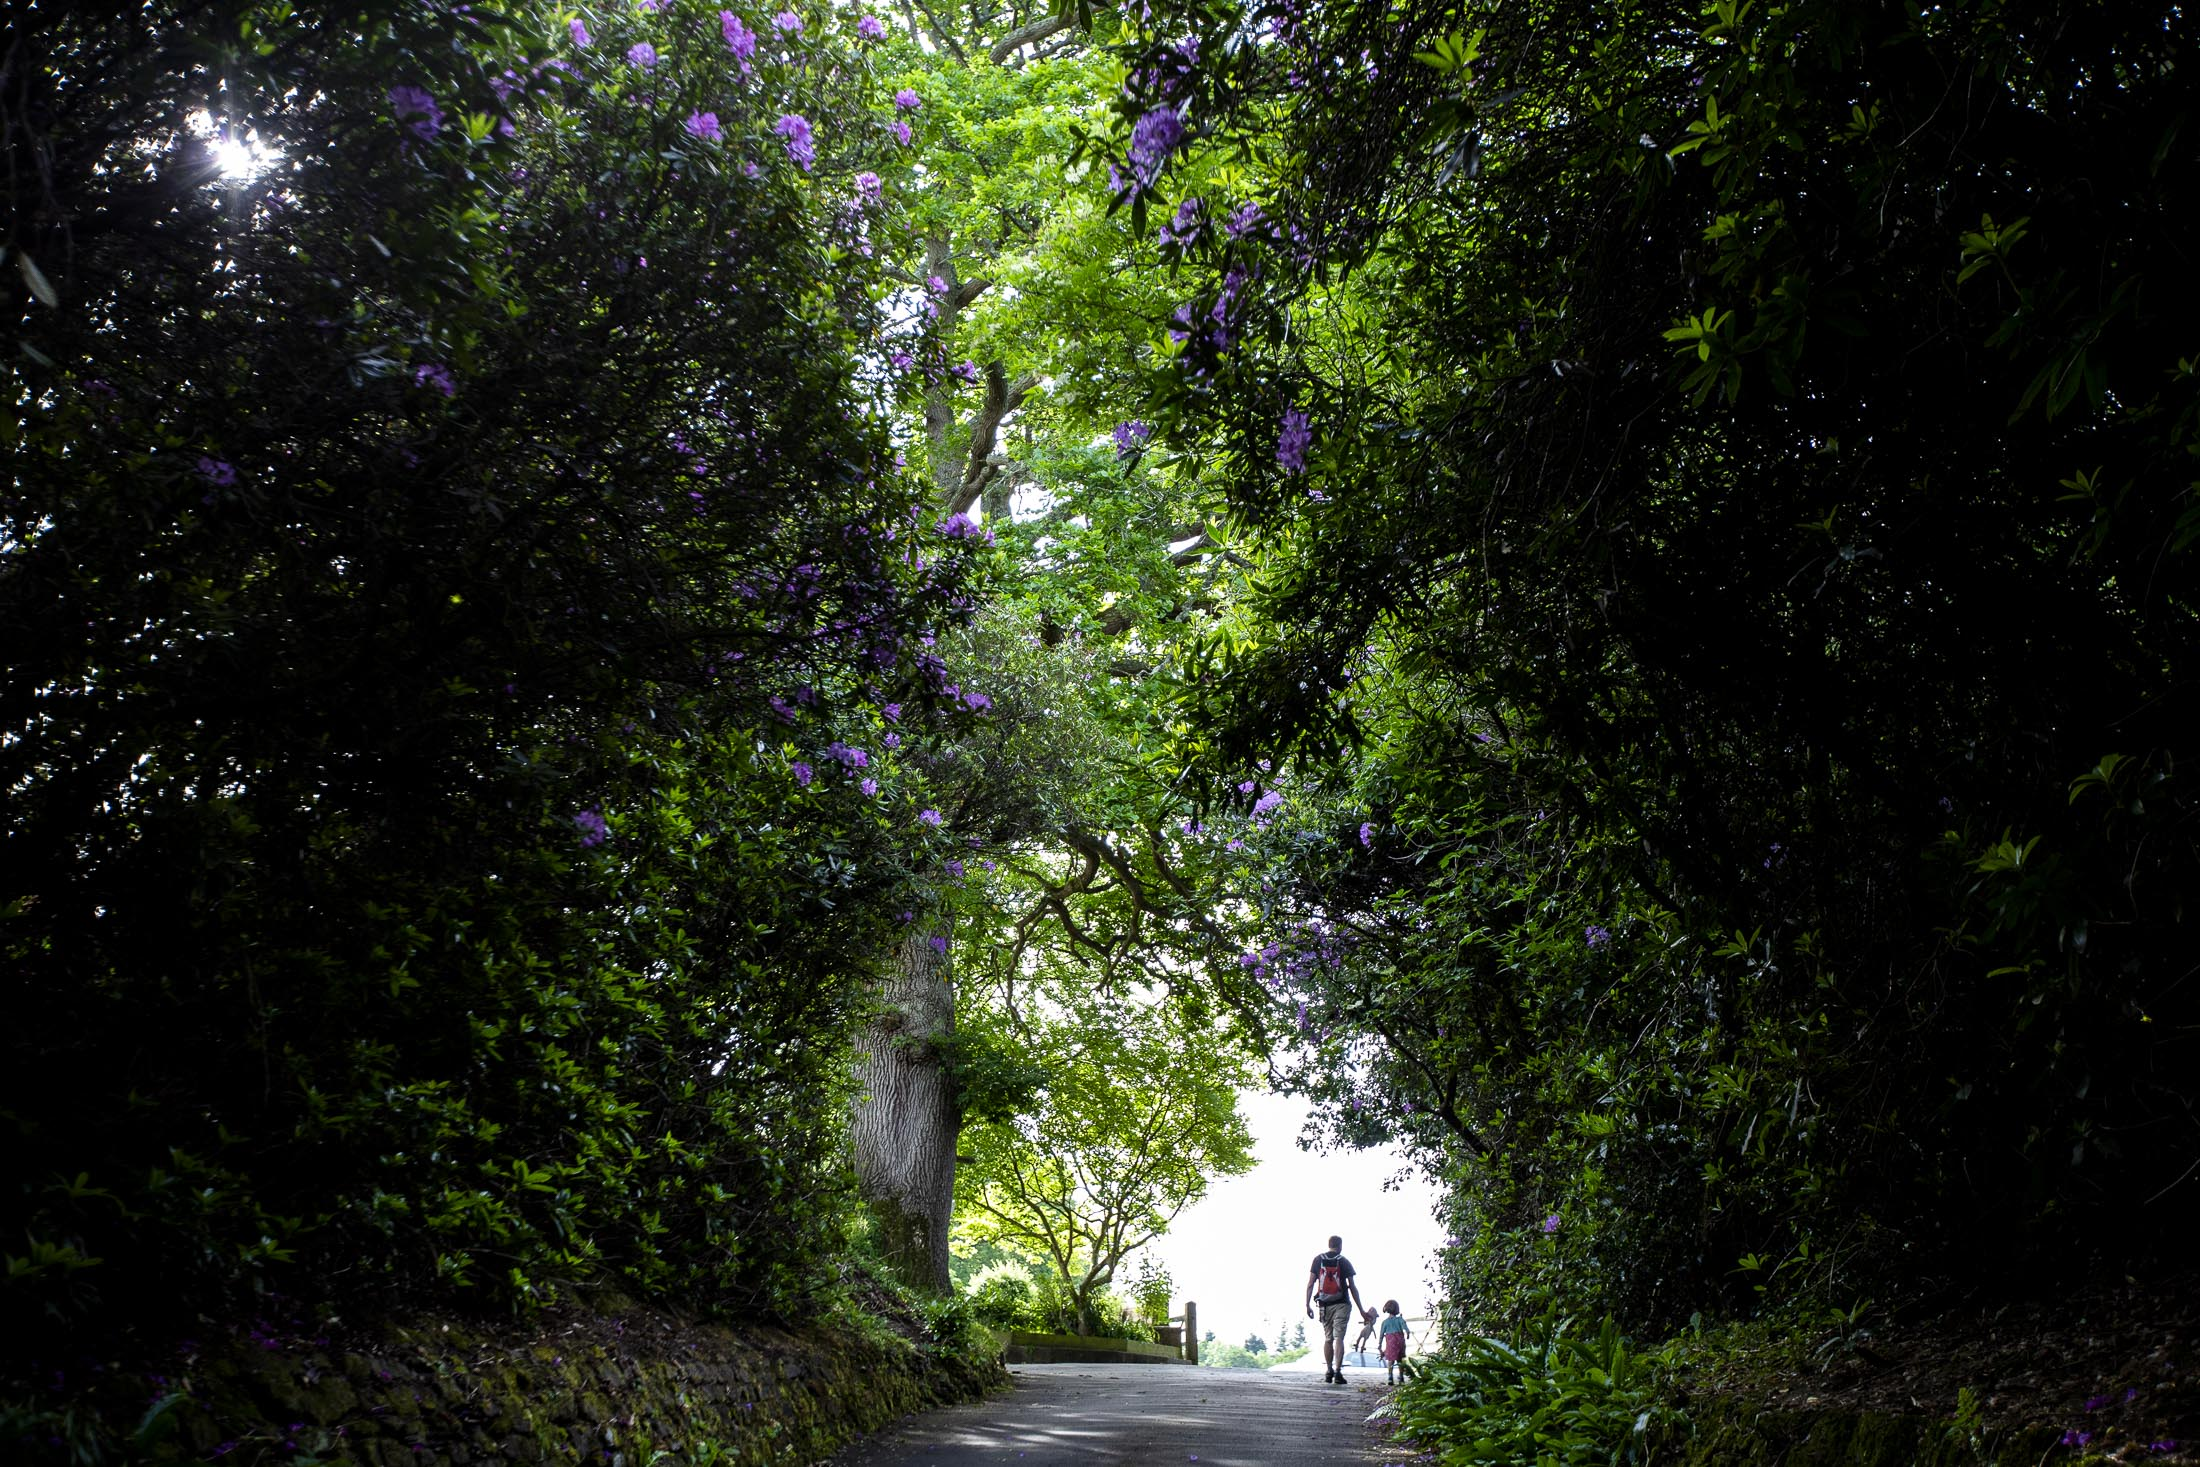 walking in the tree tunnel family photography.jpg